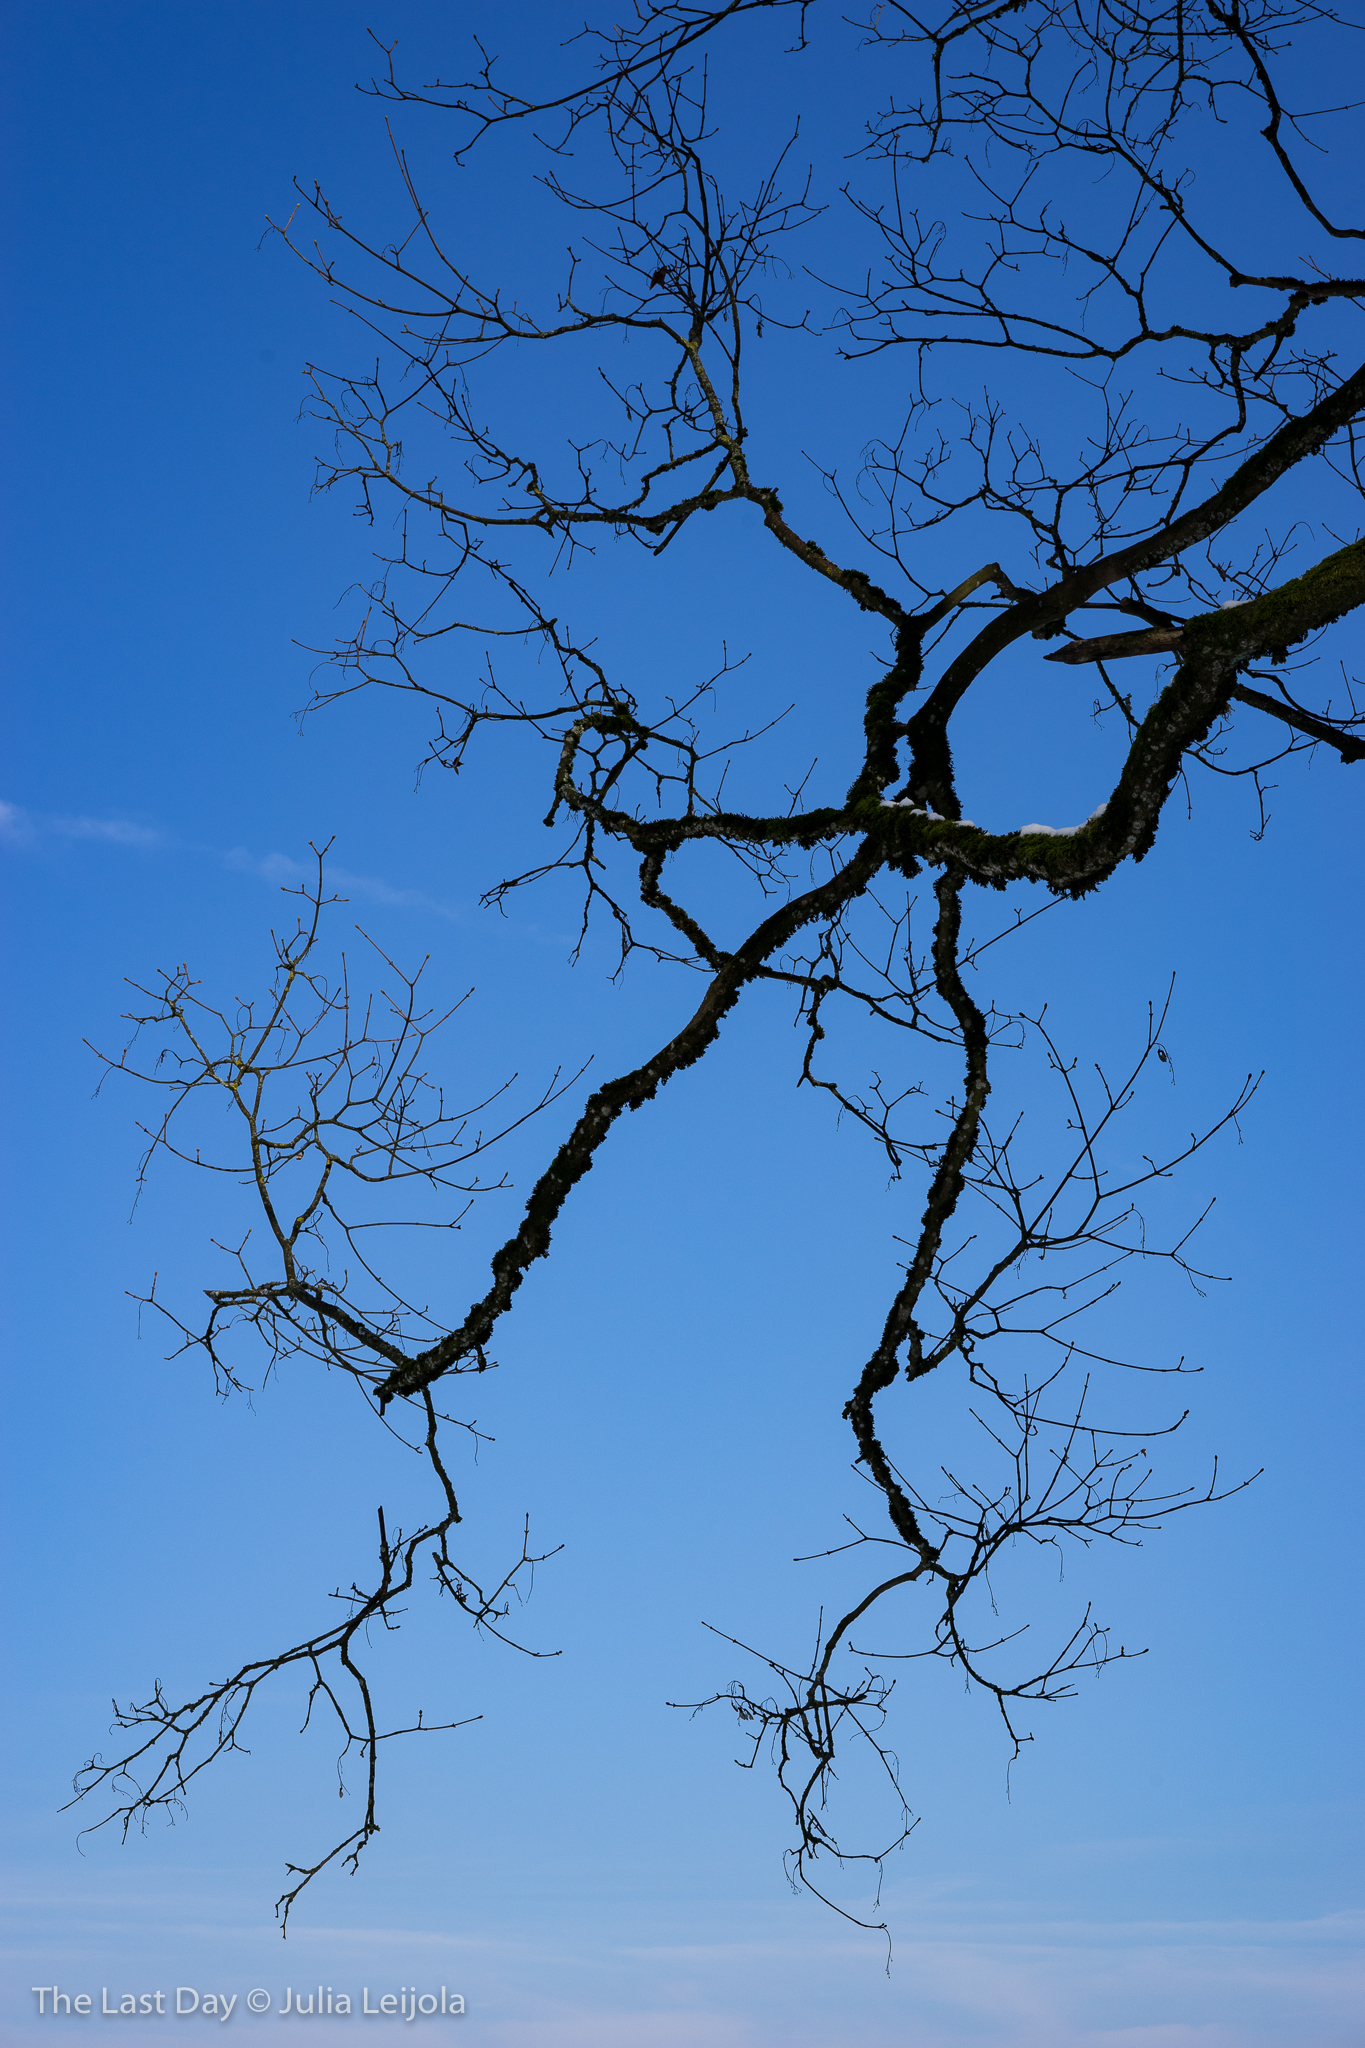 Silhouette of a large branch on a deep blue sky.